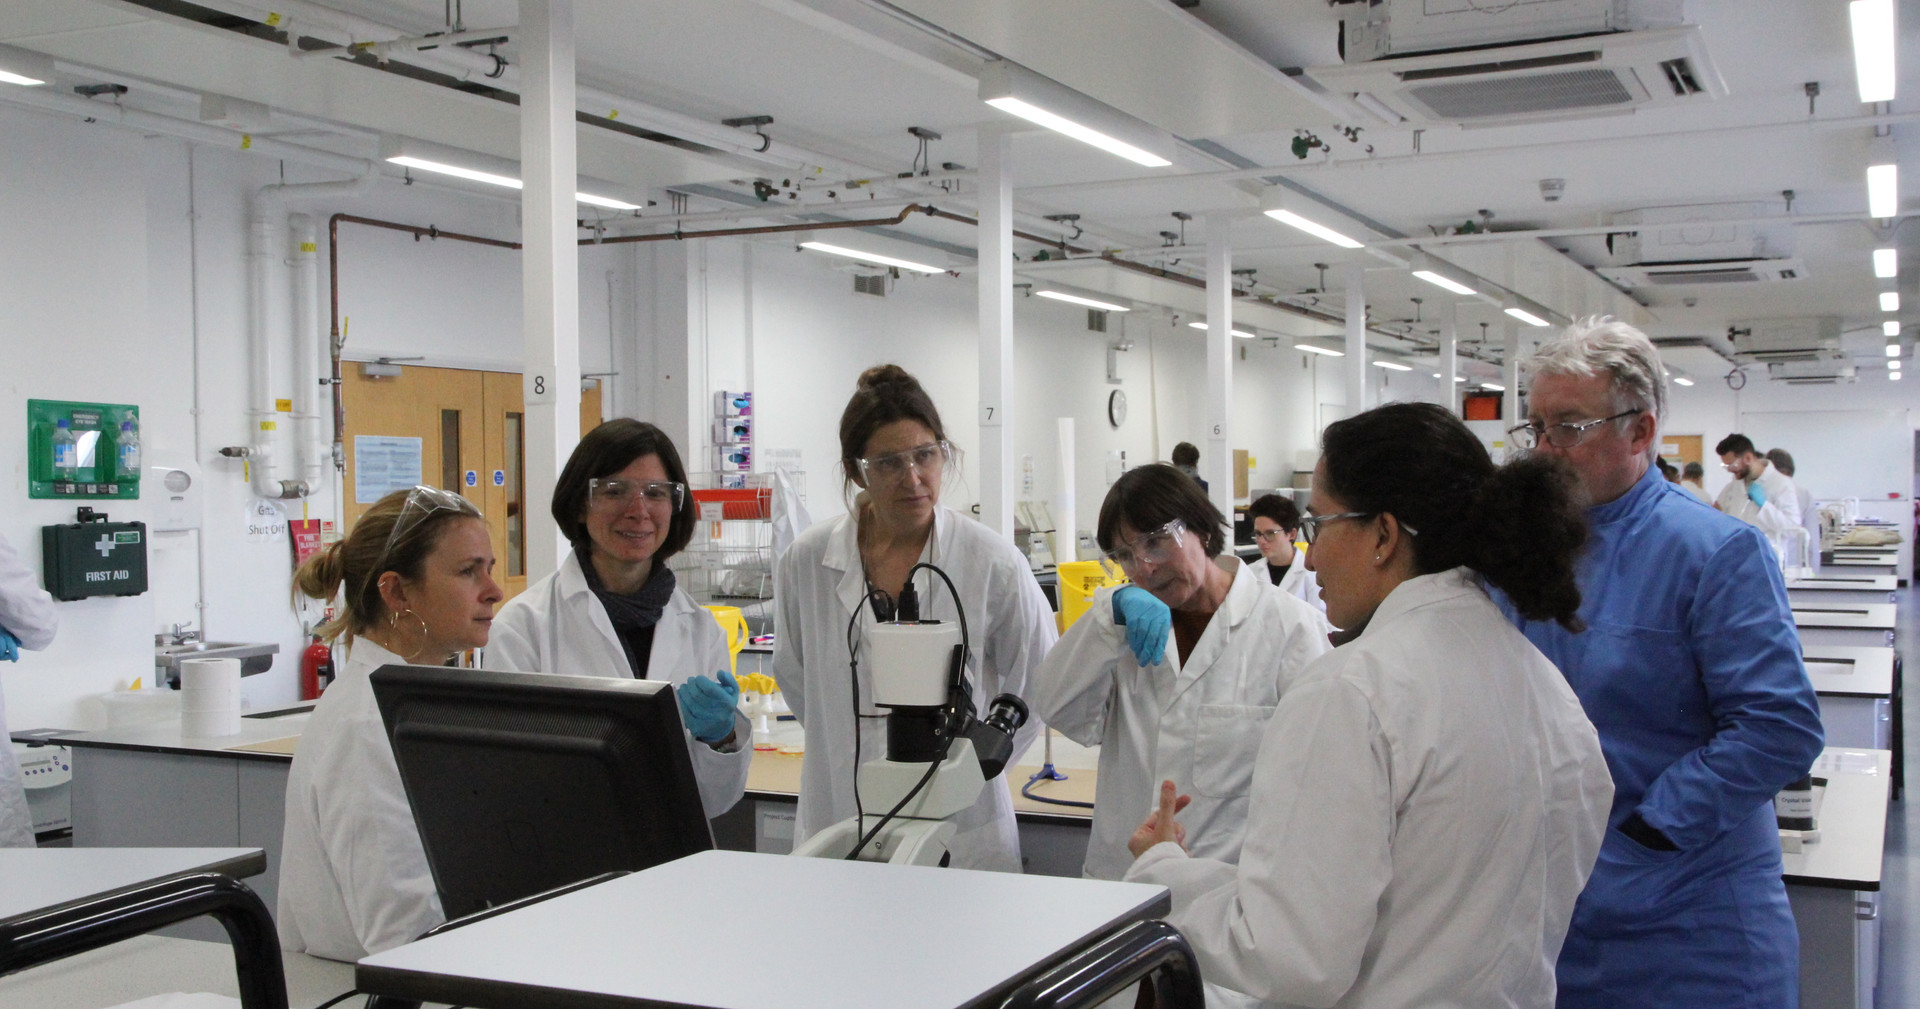 Pedro Ferreira (Biochemical Society), Blanca Pujals, Louise Mackenzie, Fiona Crisp, Christine Borland (CNoS), Josana Rodrigues (participant) and Lynn Dover (Biomedical Science, Northumbria University) at Ellison Lab 314, Northumbria University